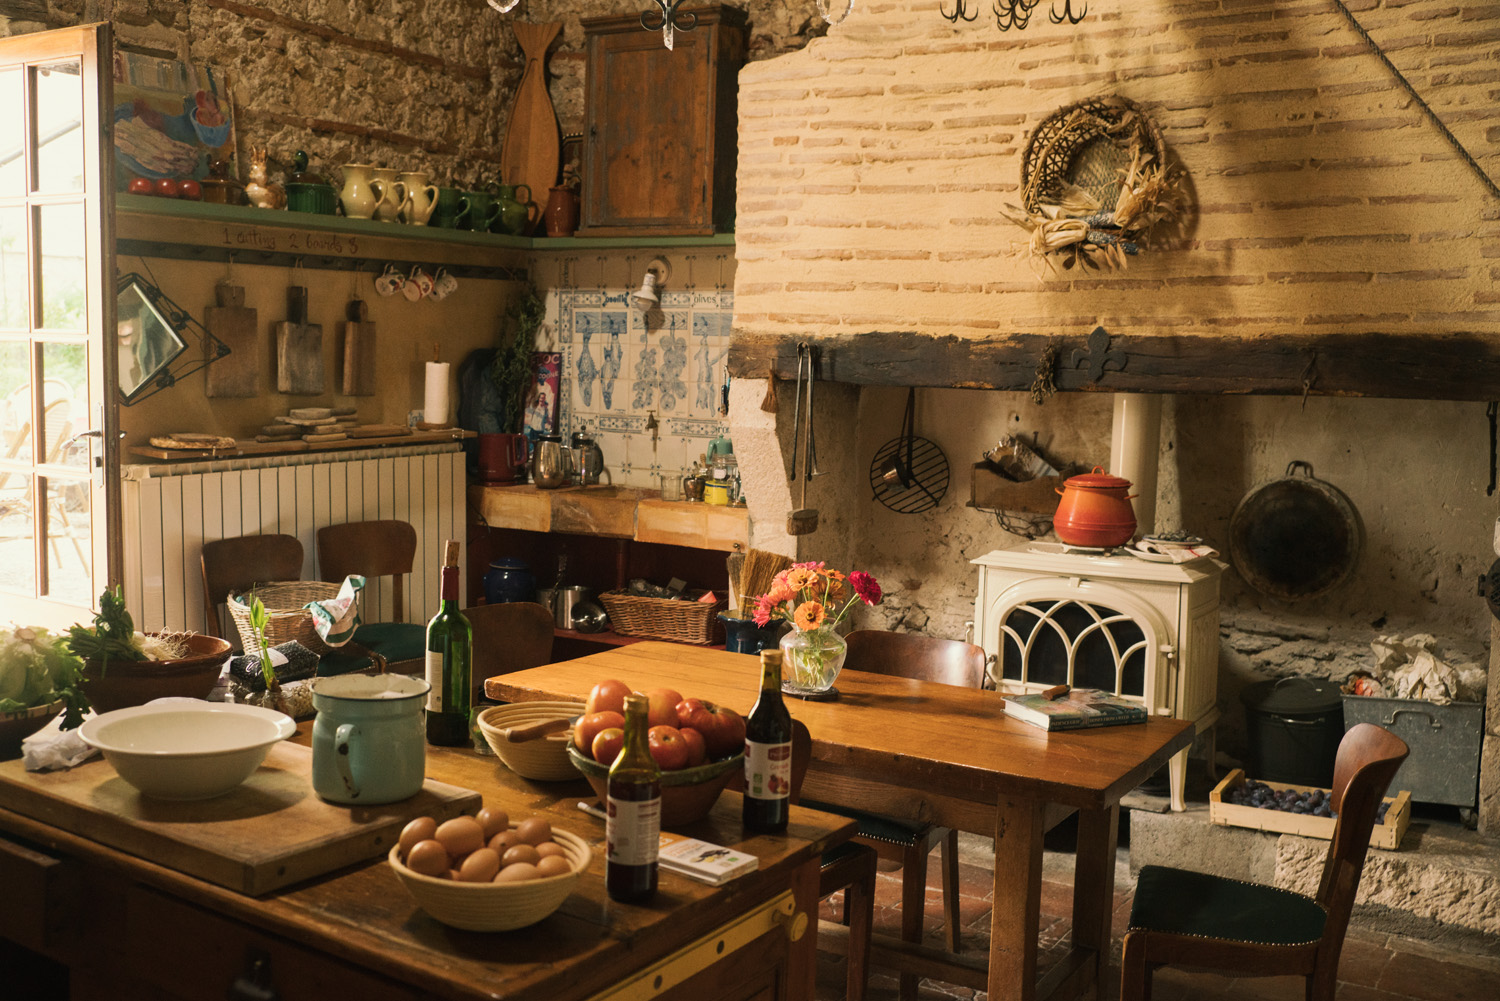 Camont's 18th Century Kitchen